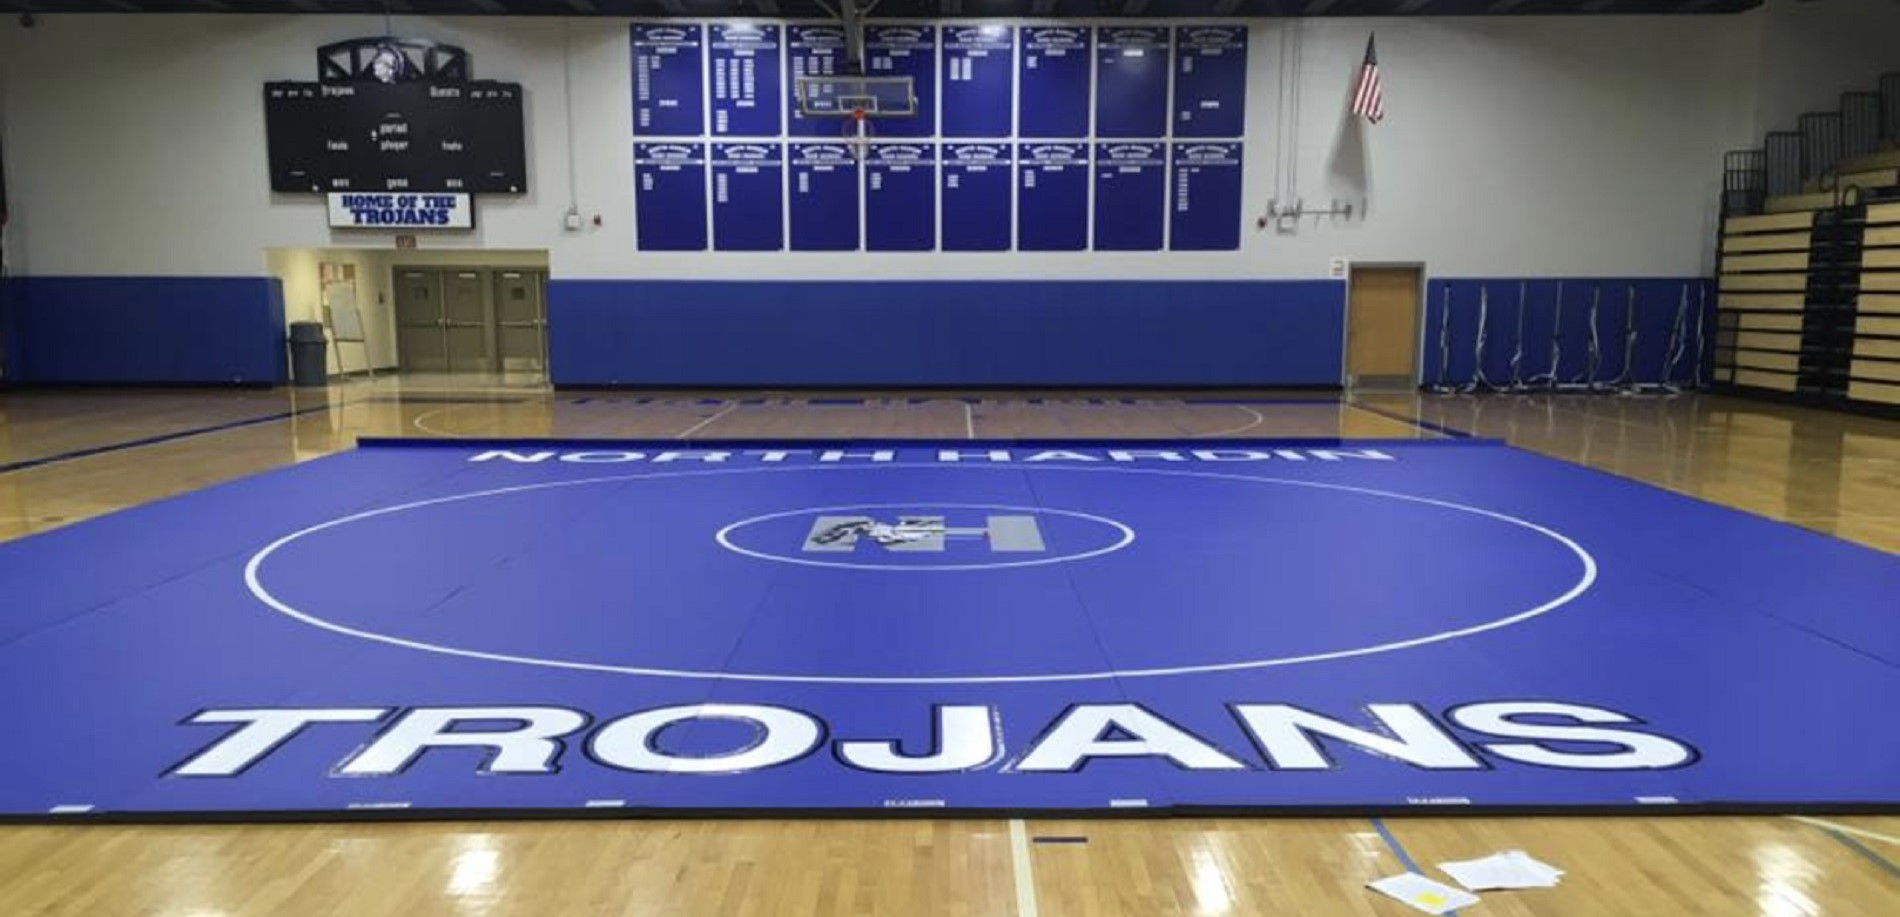 North Hardin Trojans gym and wrestling mat